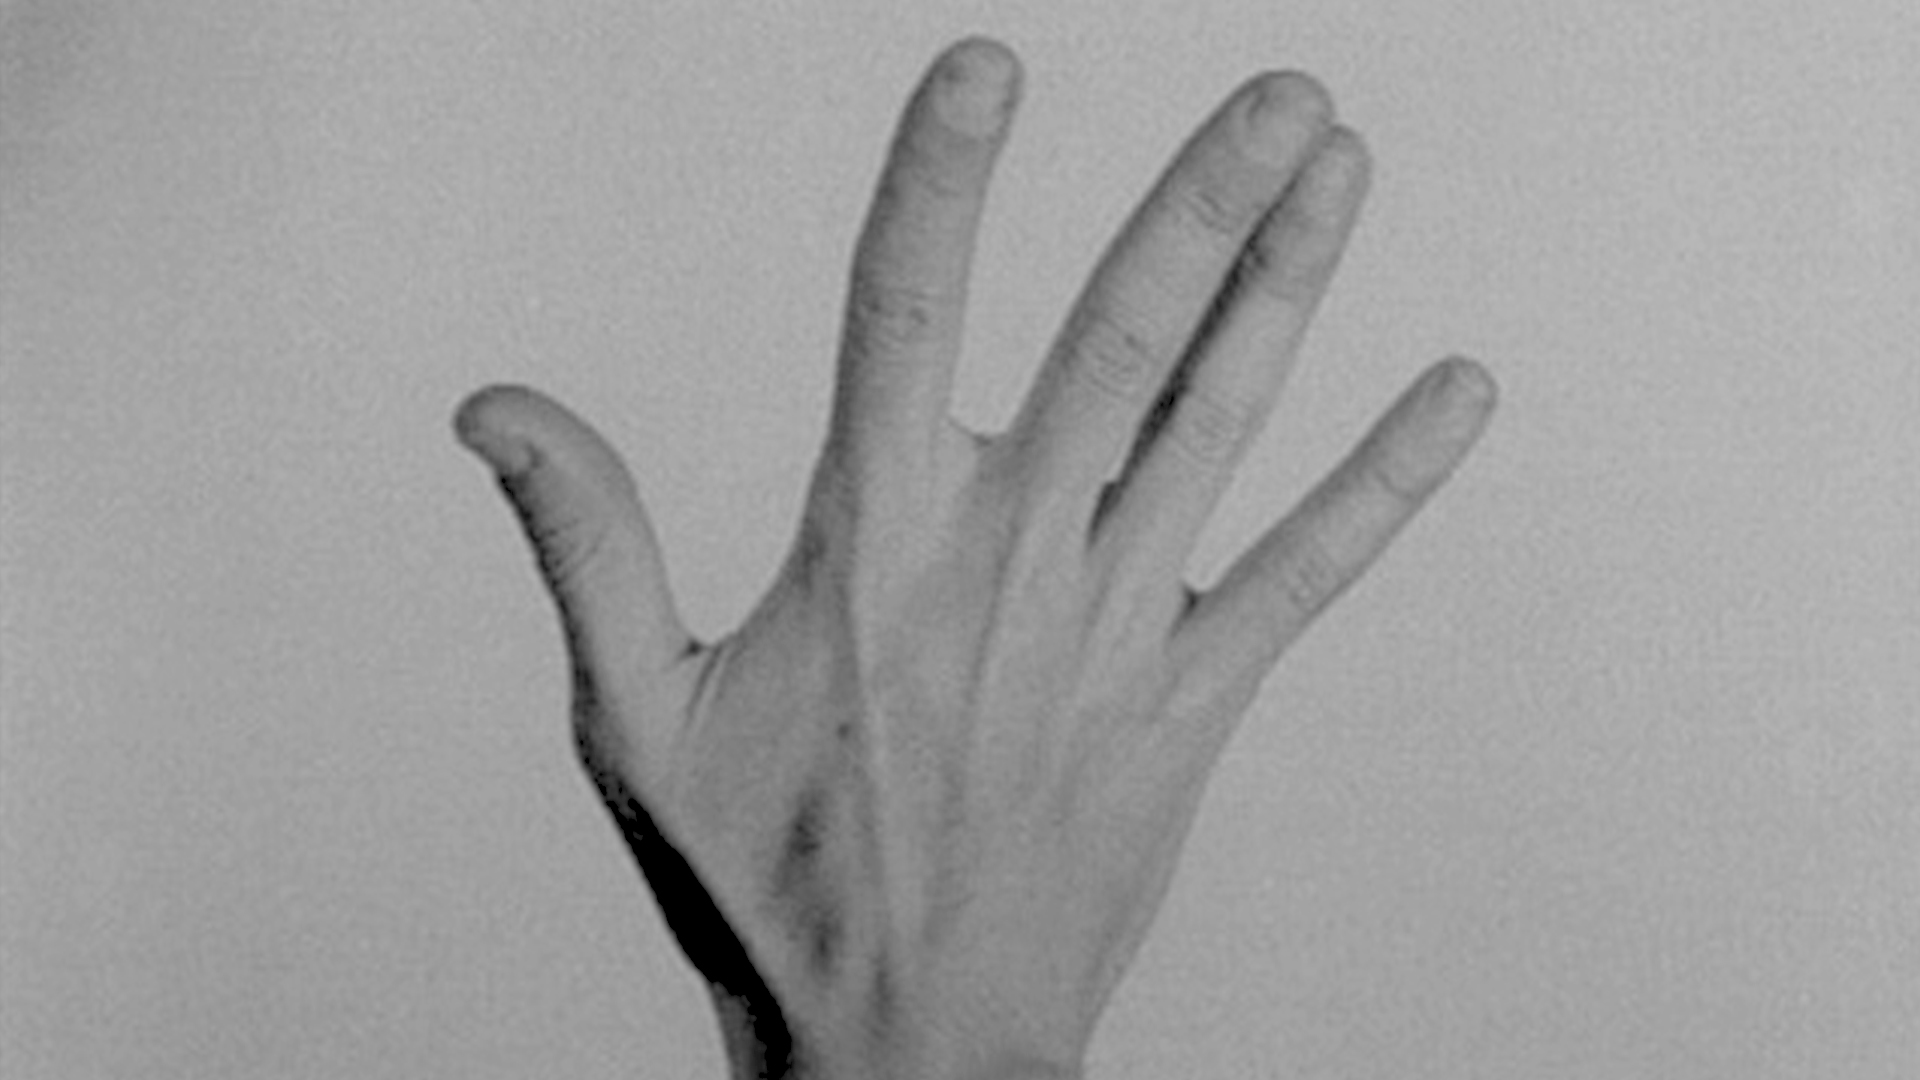 TO FILM WITH ONE HAND MY OTHER HAND - ciclo de cinema #2 ⟡ ZDB